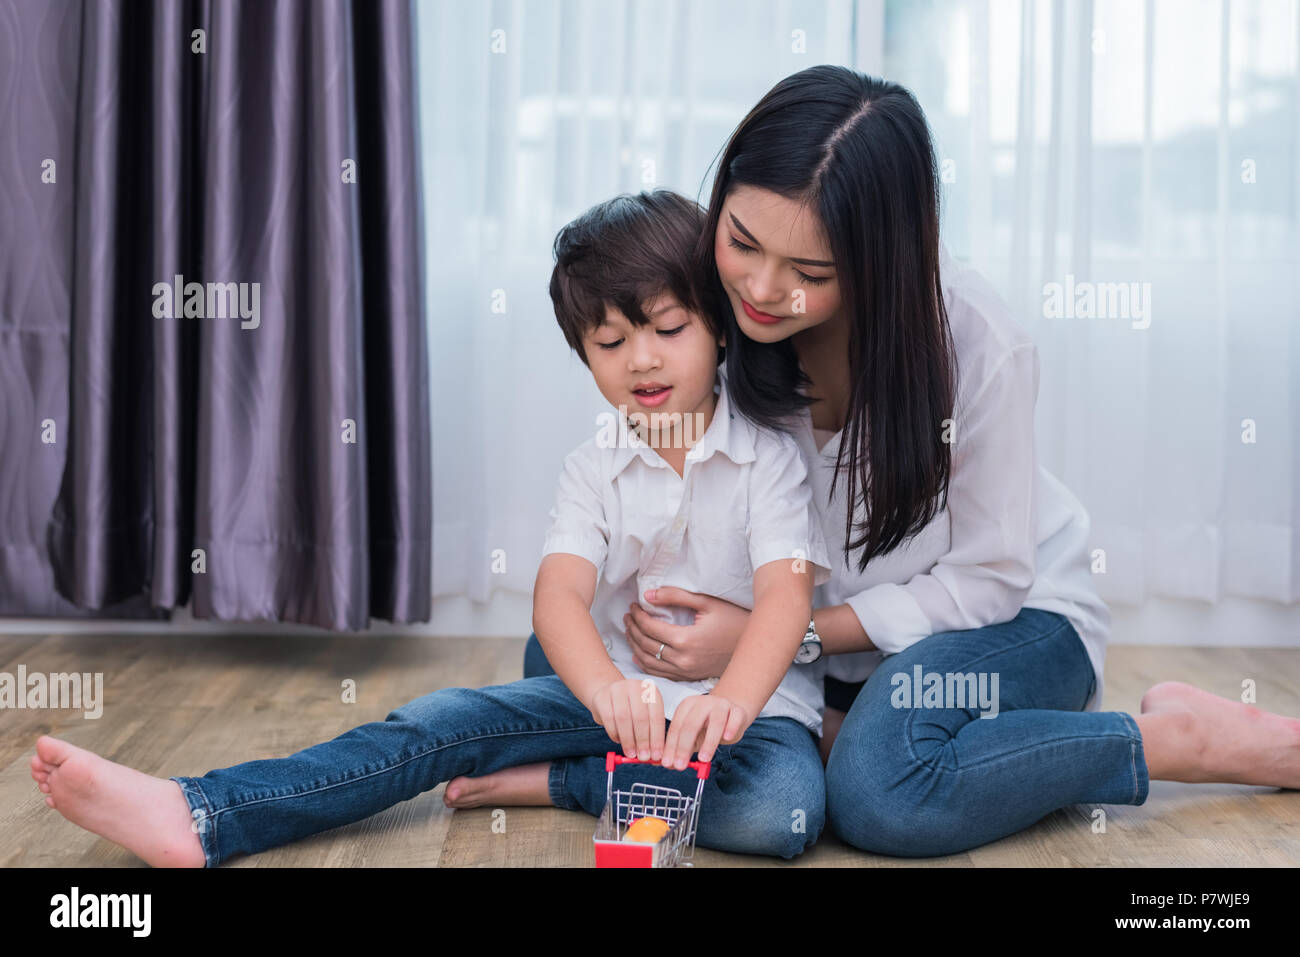 Young Asian Mom And Son Playing Toy In House Mother And Son Concept Happy Family And Home Sweet Home Theme Preschool And Back To School Theme